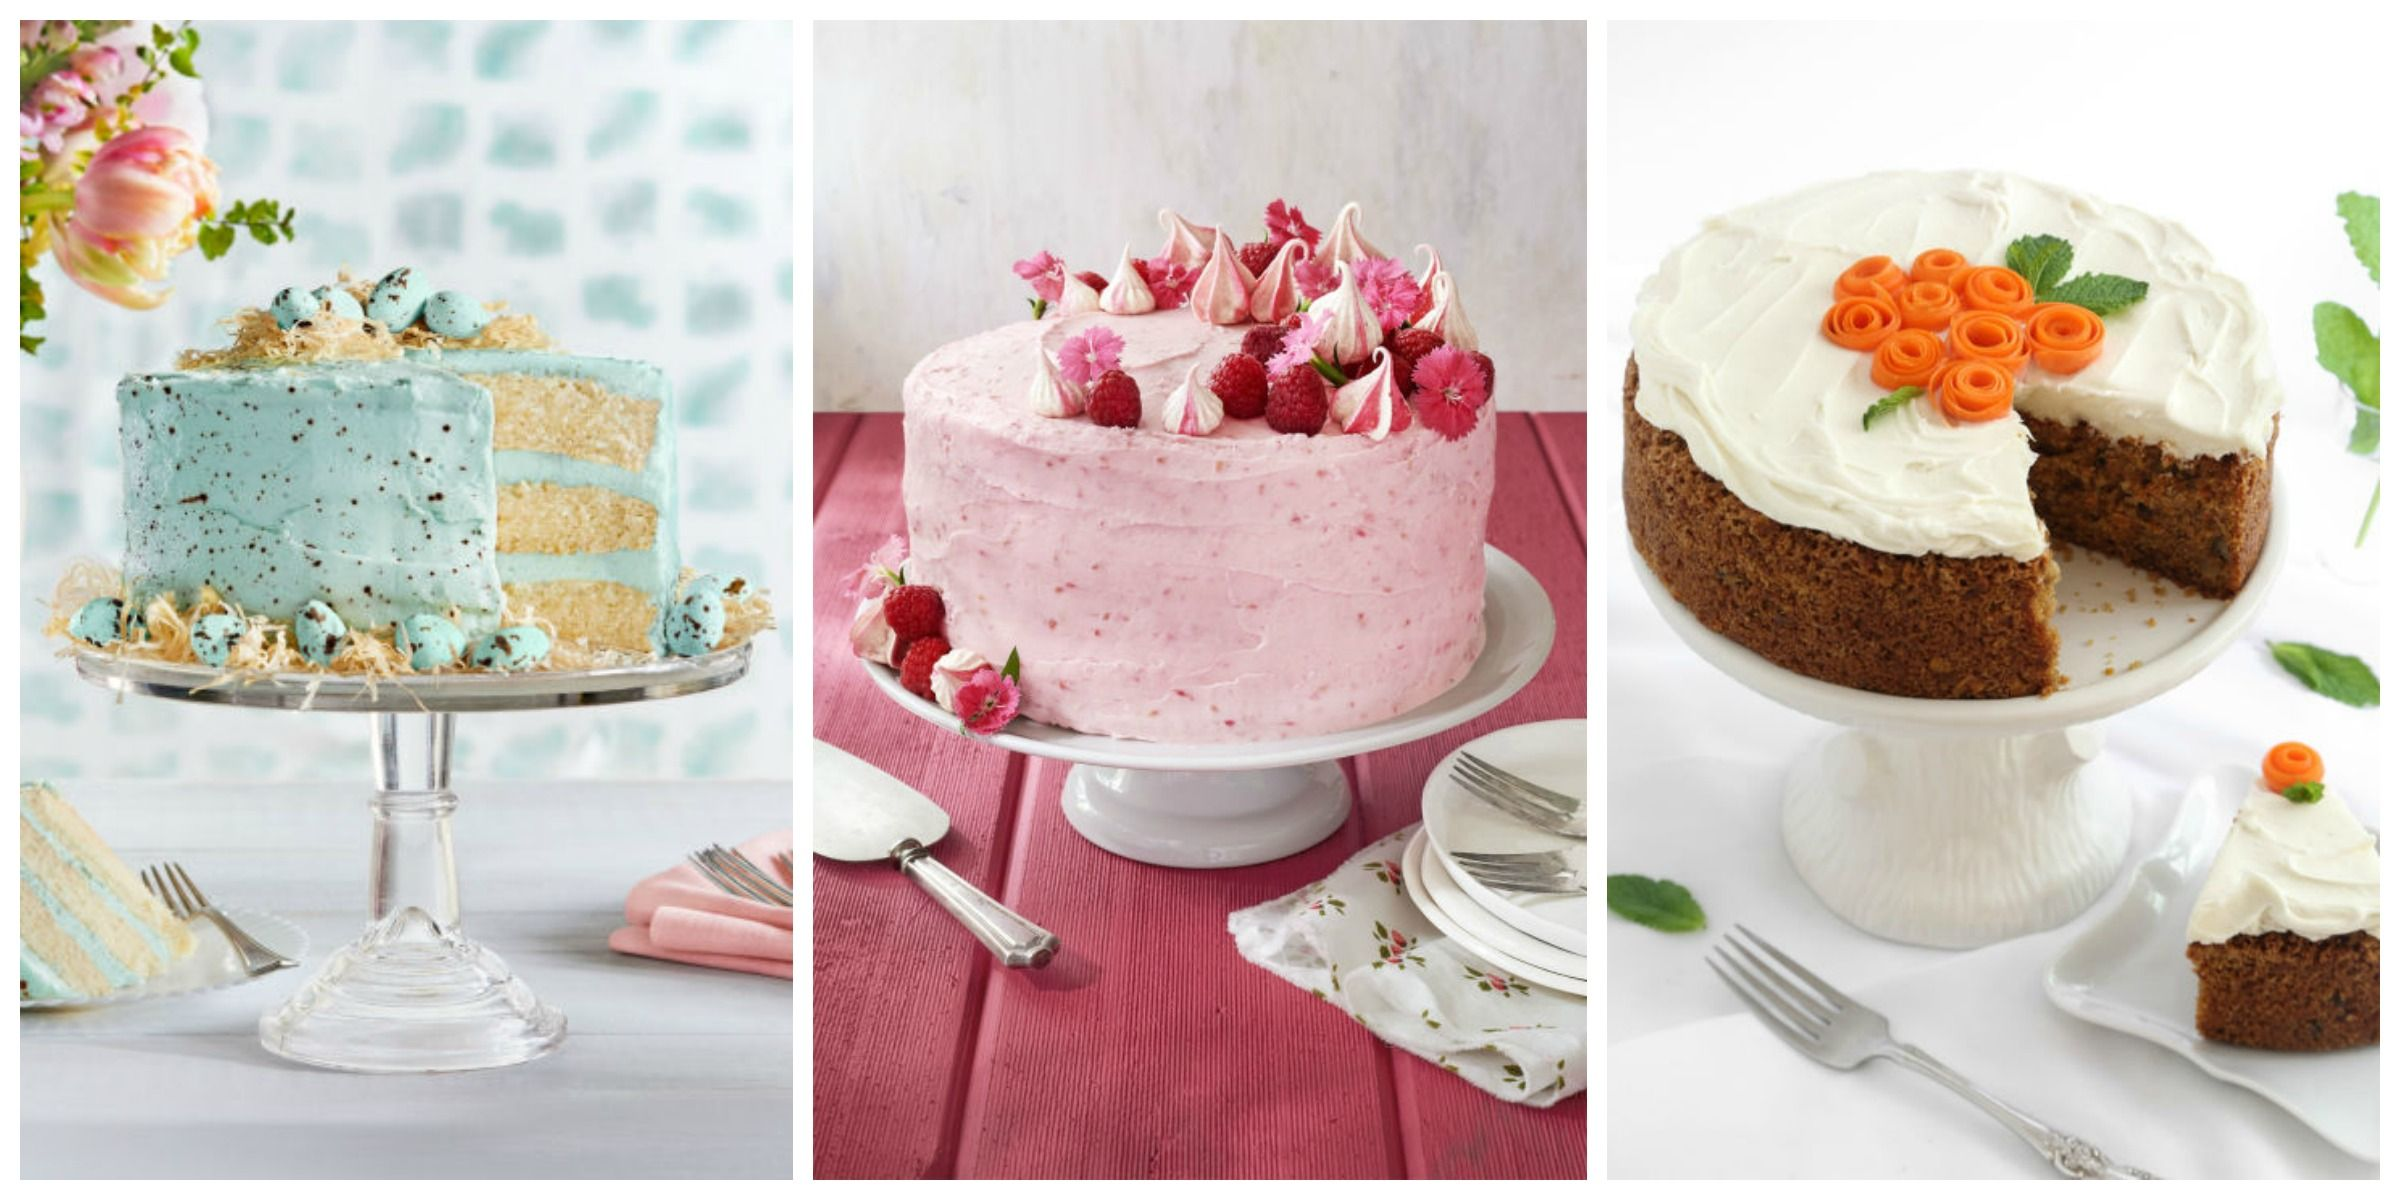 15 Beautiful Cake Decorating Ideas - How to Decorate a Pretty Cake